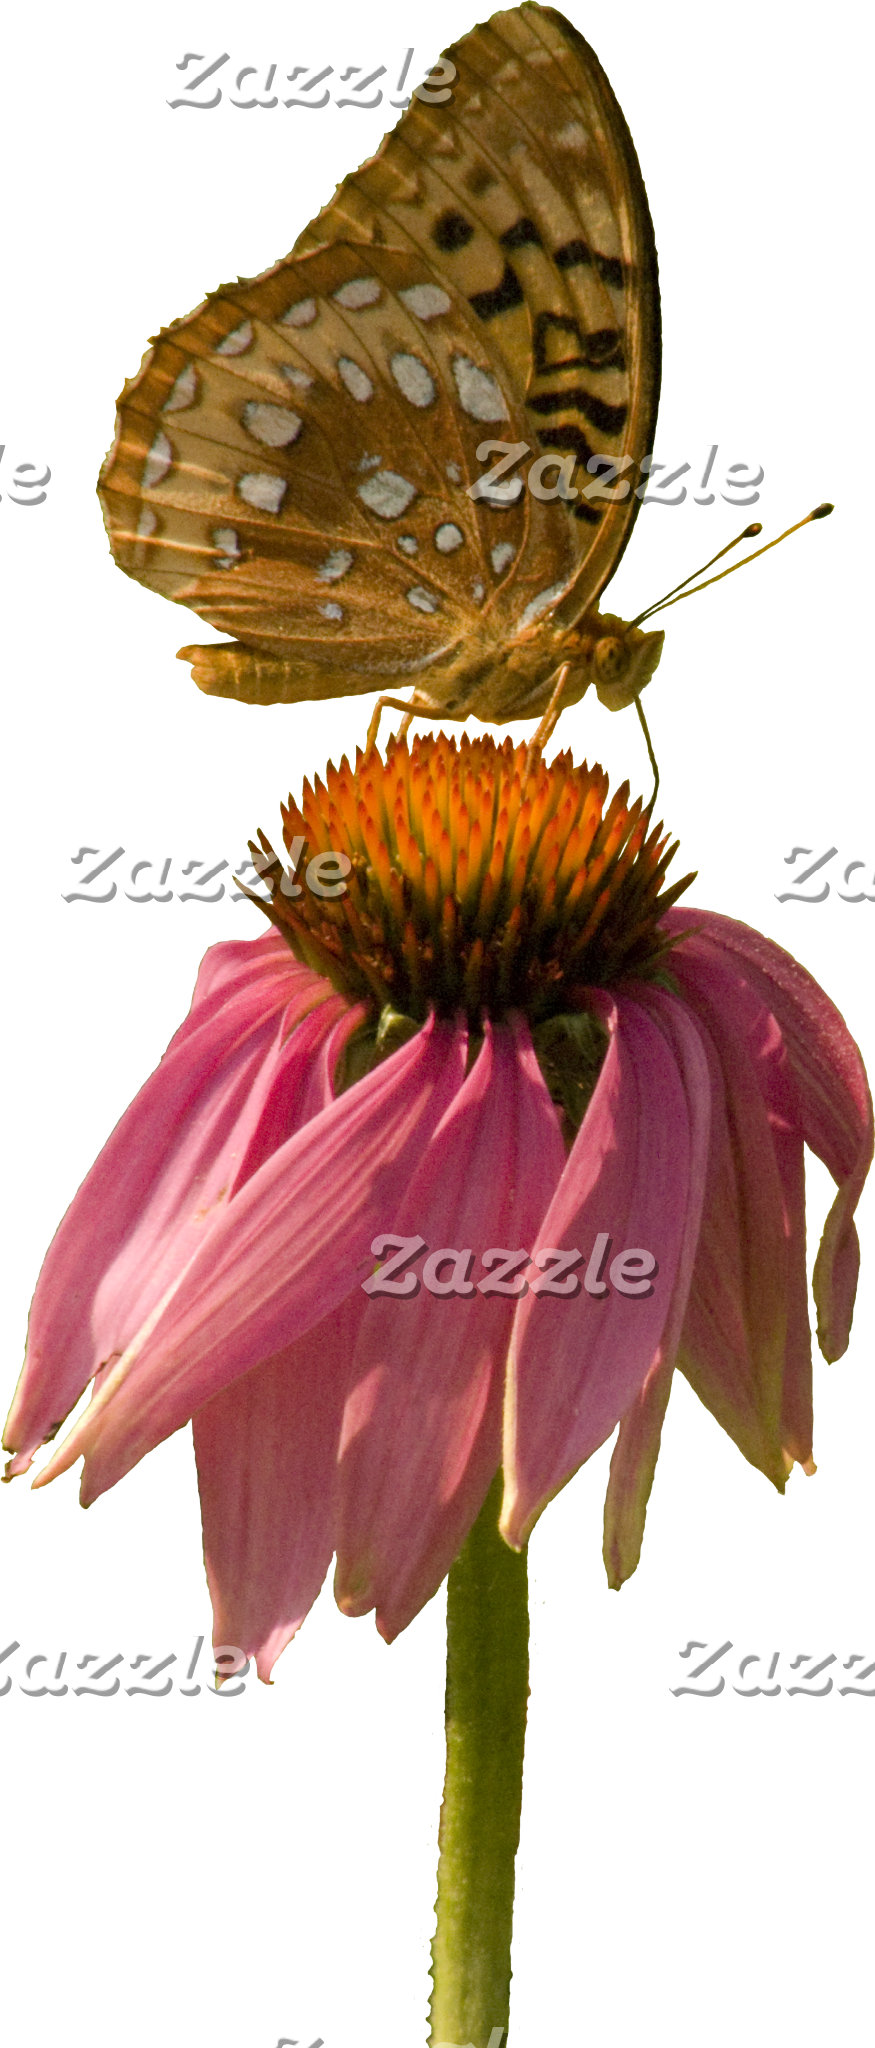 On Top of the Coneflower -- Butterfly & Coneflower